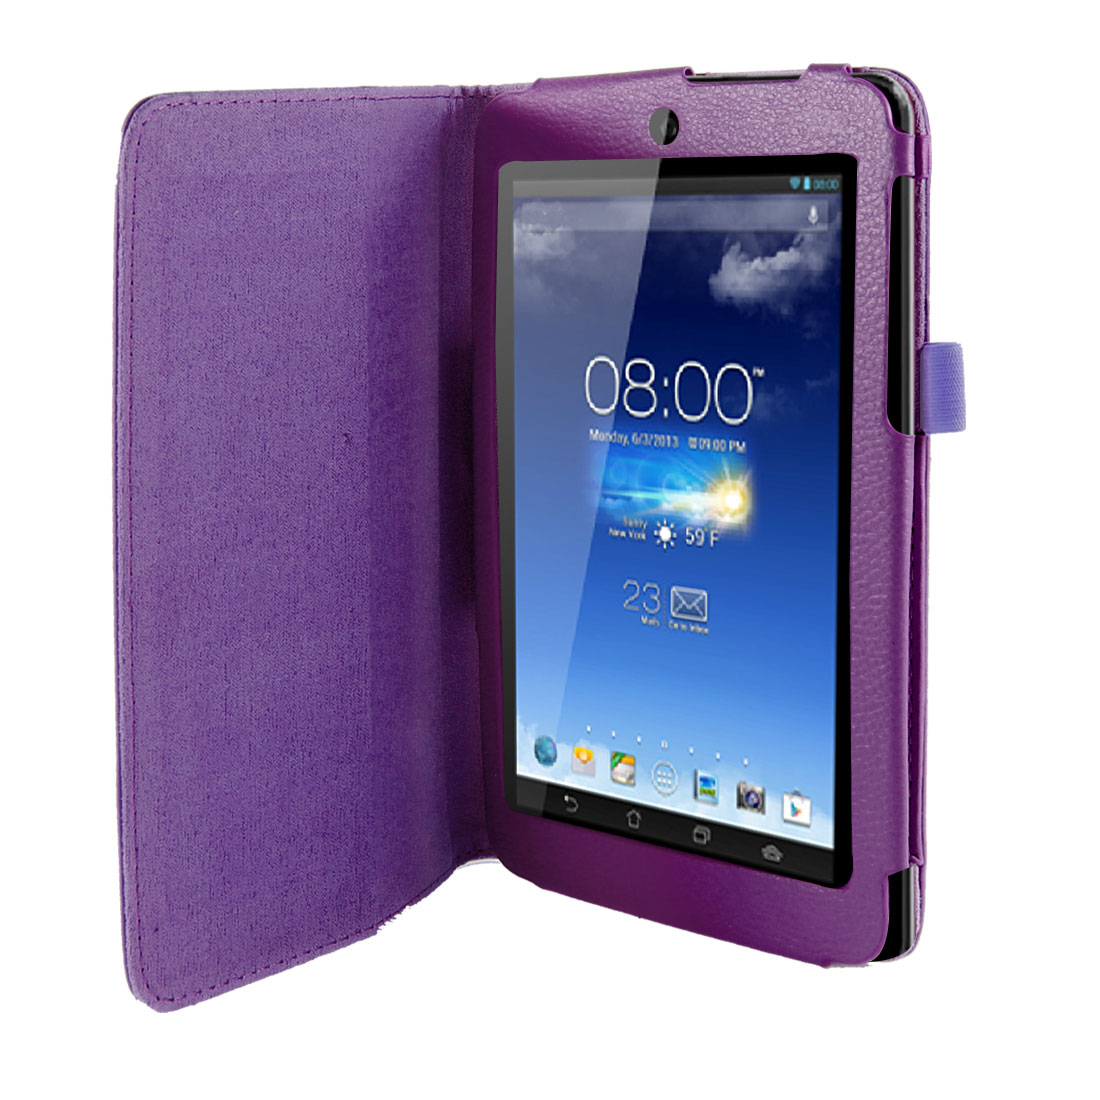 Stand Magnetic Flip Protective Case Cover Purple for ASUS MeMO Pad HD 7 ME173X